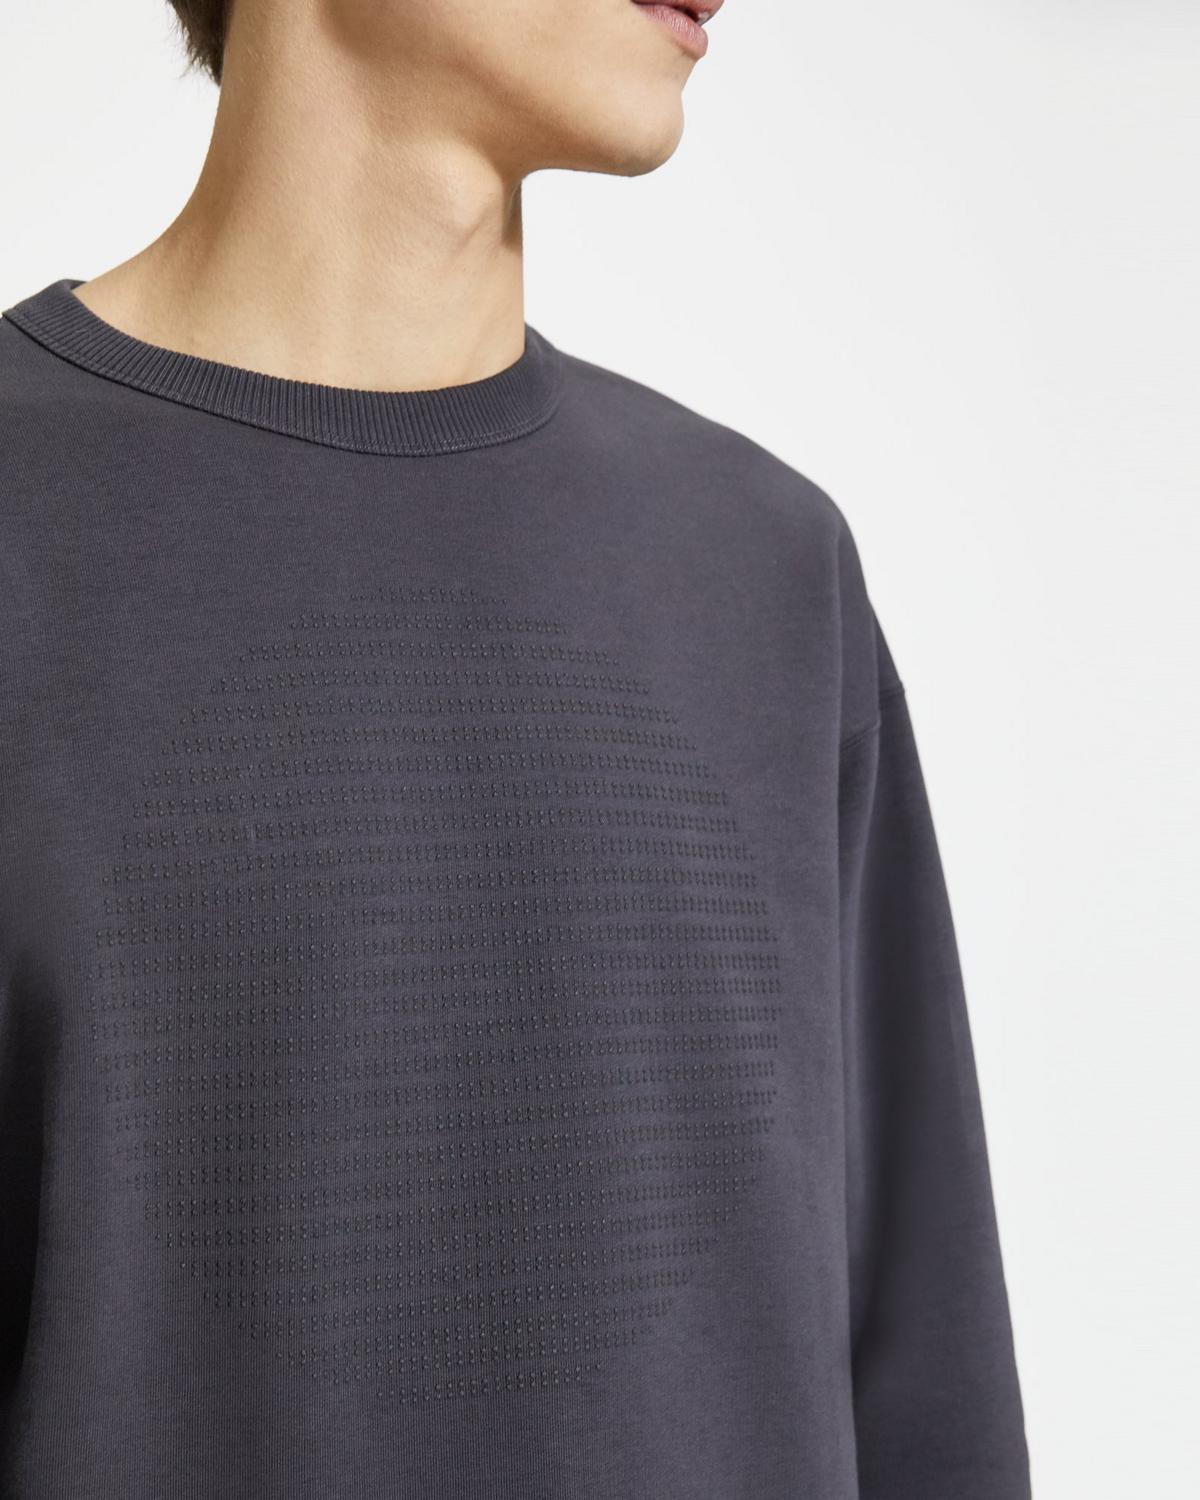 Lunar Fleece Sweatshirt